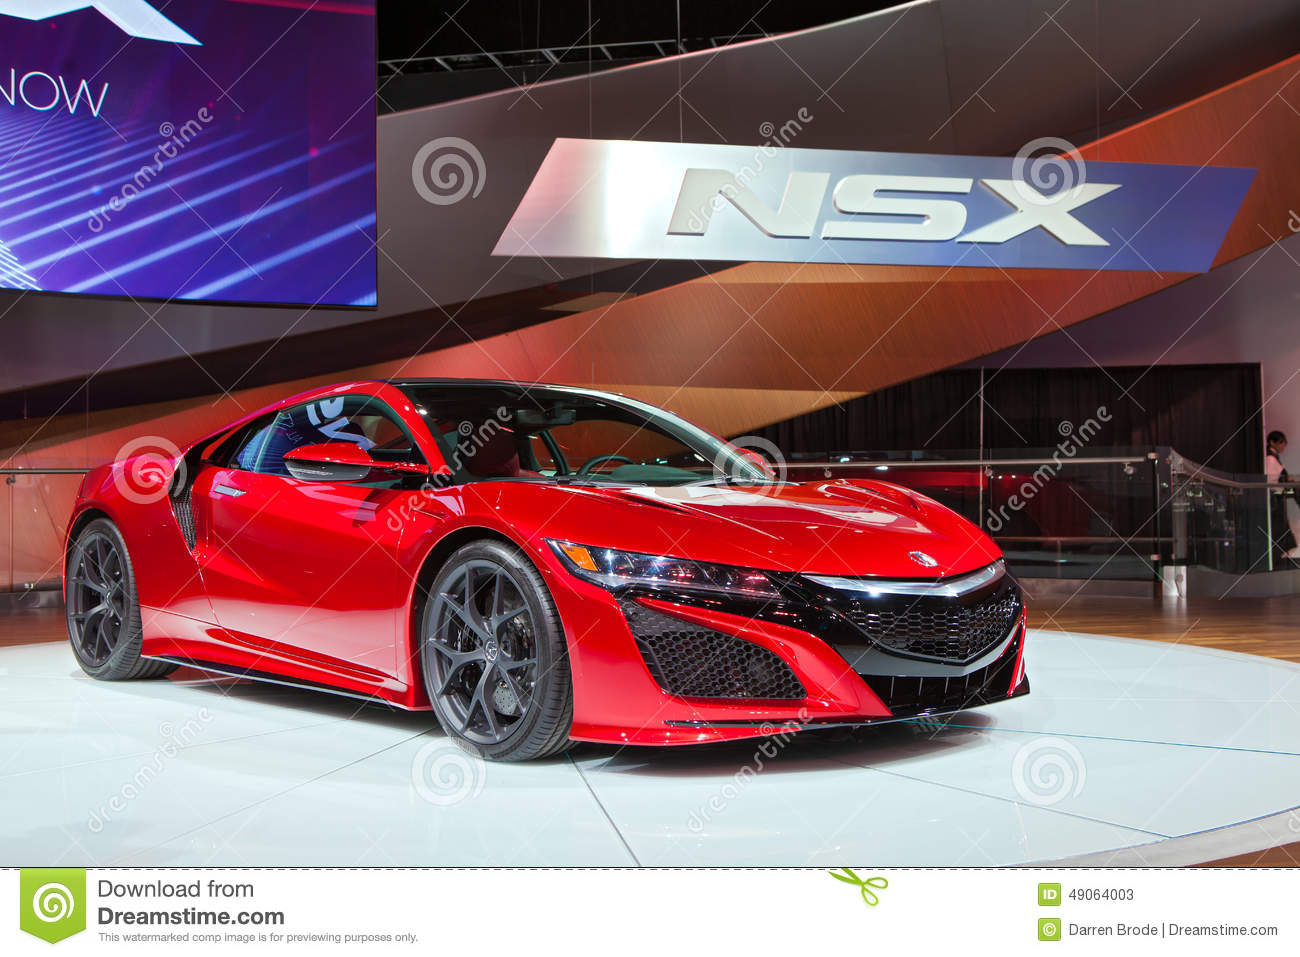 salon de l 39 auto 2016 d 39 acura nsx detroit photo stock ditorial image 49064003. Black Bedroom Furniture Sets. Home Design Ideas